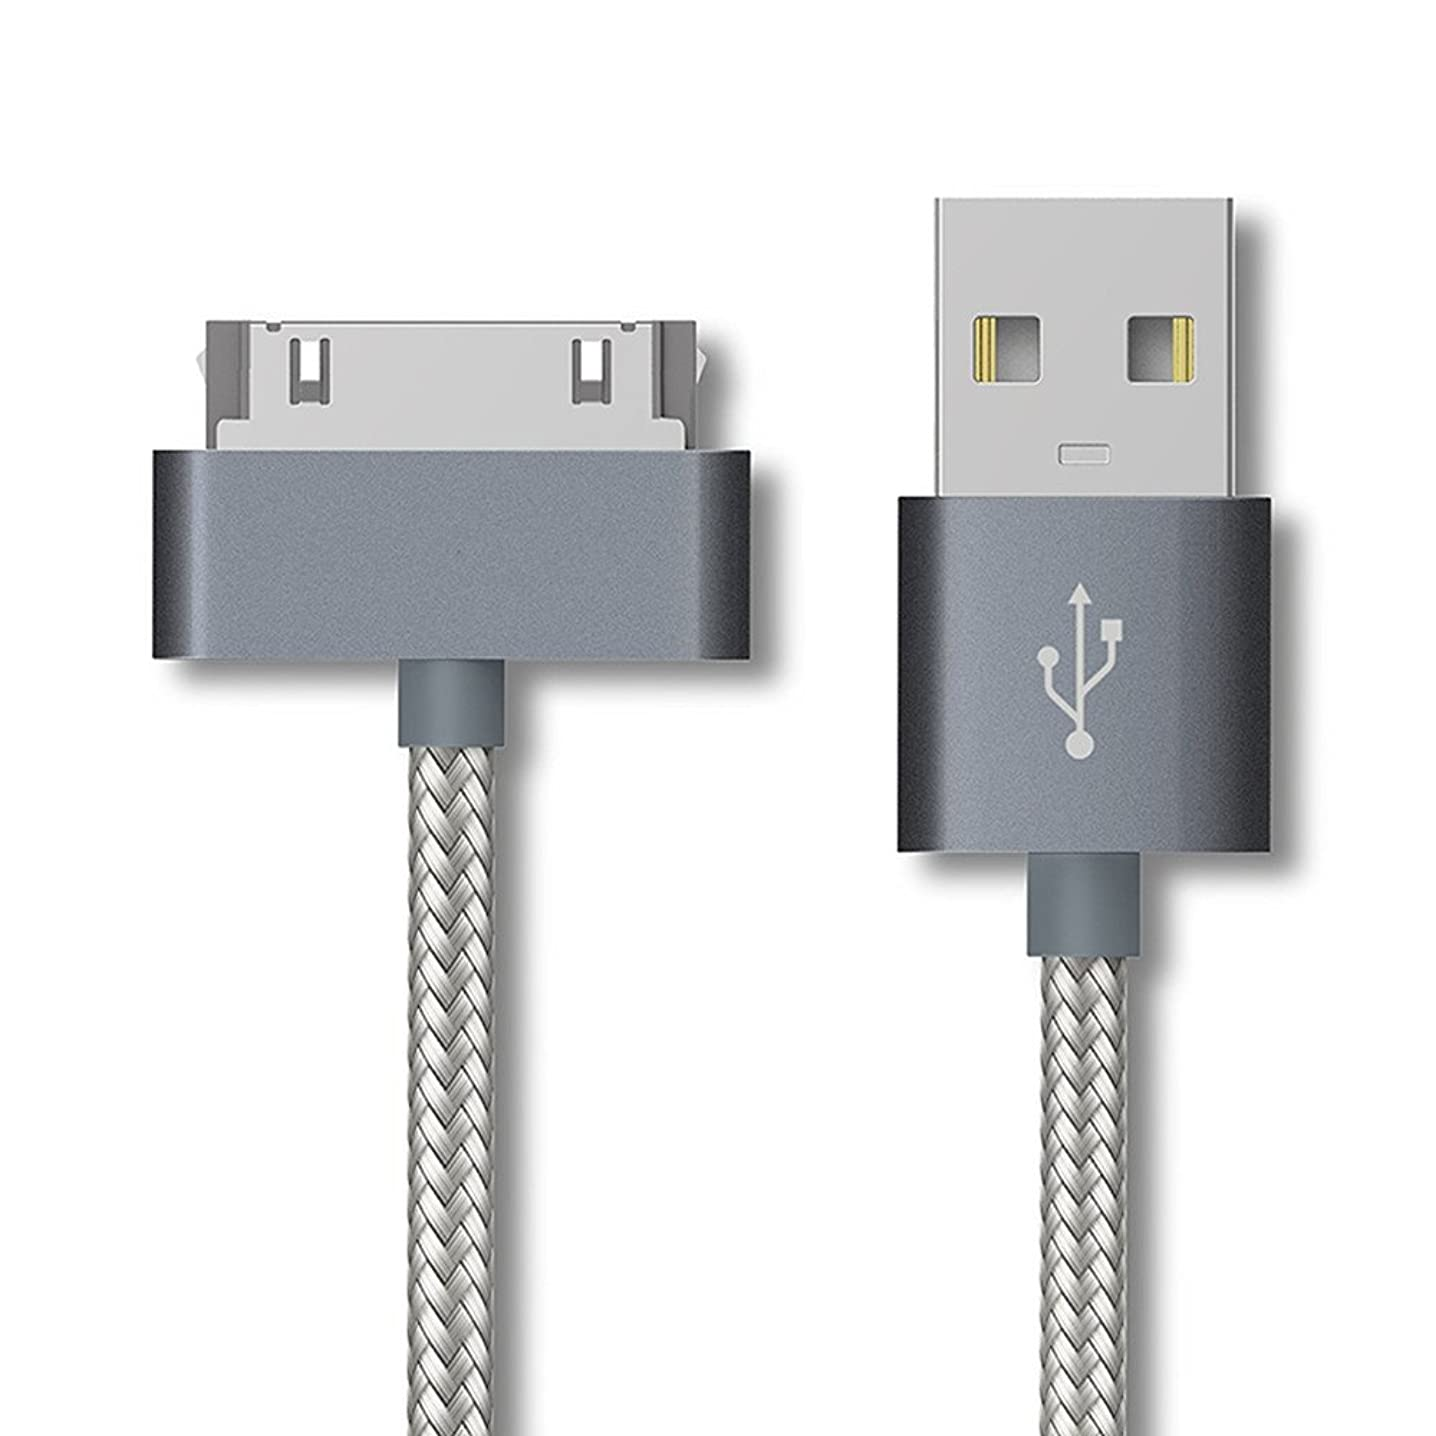 Enligten 2-Pack 3FT 6FT EXTRA LONG 30 Pin to USB SYNC and Charge Cable Cord for Apple iPhone 4/4s, iPod 1-6 Gen, iPod 1-4 Gen, iPad 1-3 Gen (Gray)